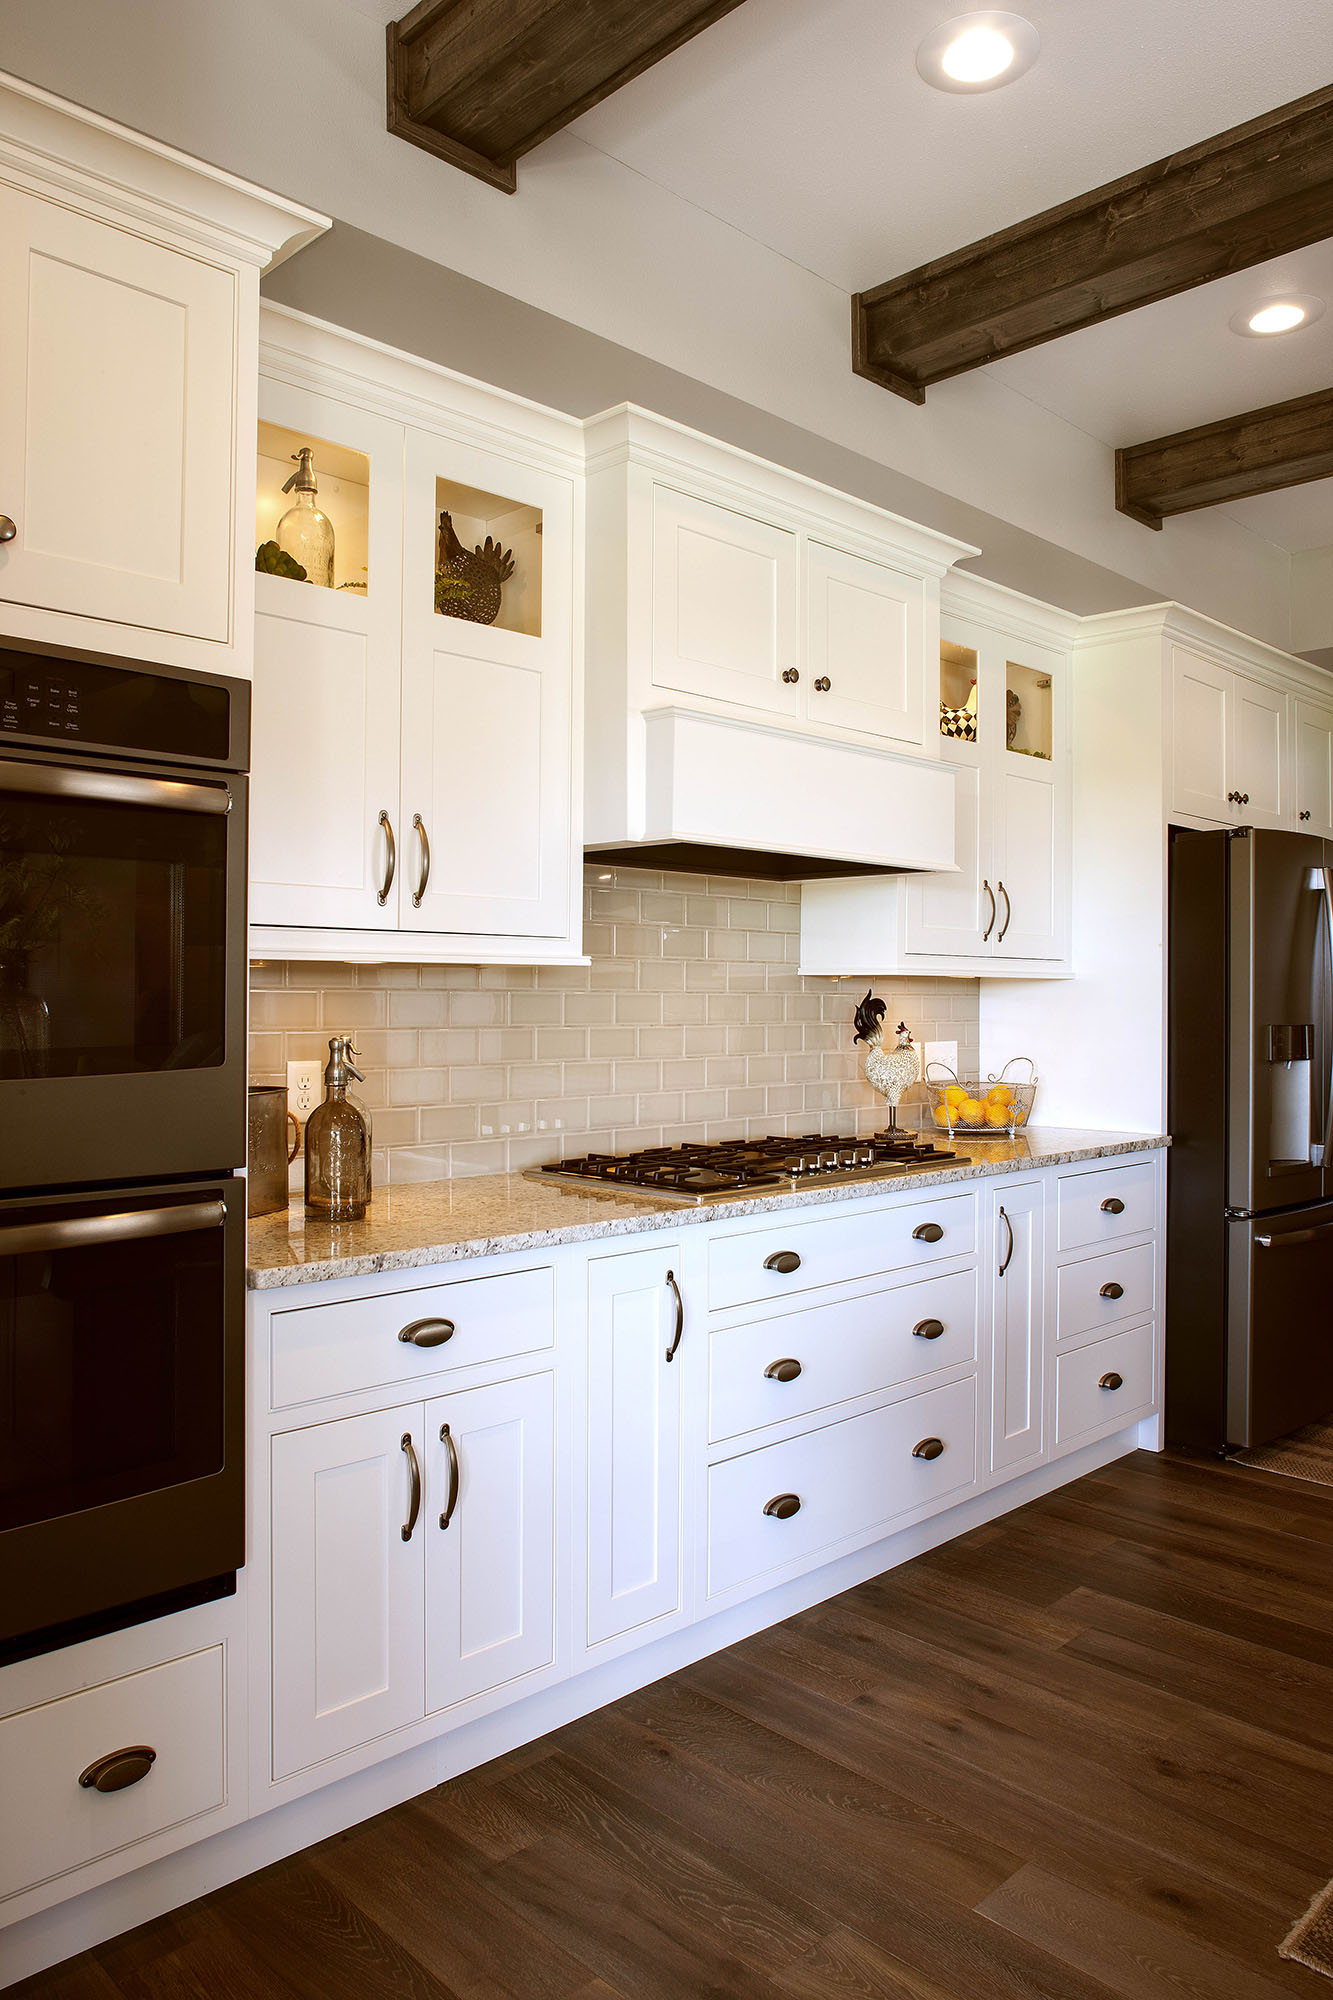 Painted Kitchen Cabinets In White By Showplace Cabinetry   View 4